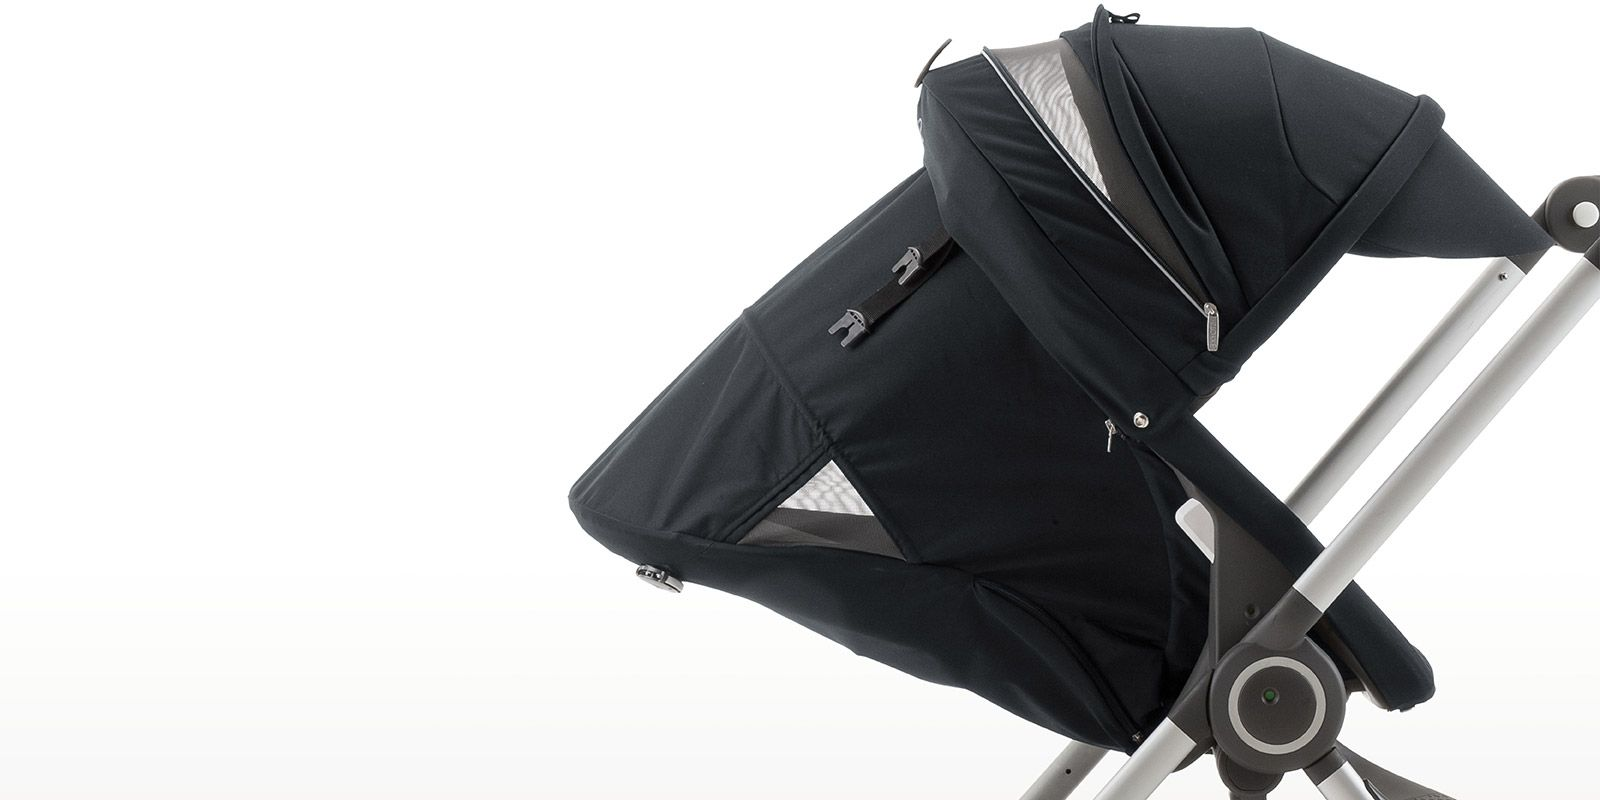 For Autumn 2014, Stokke introduces new features to our smart, urban stroller Stokke® Scoot™.